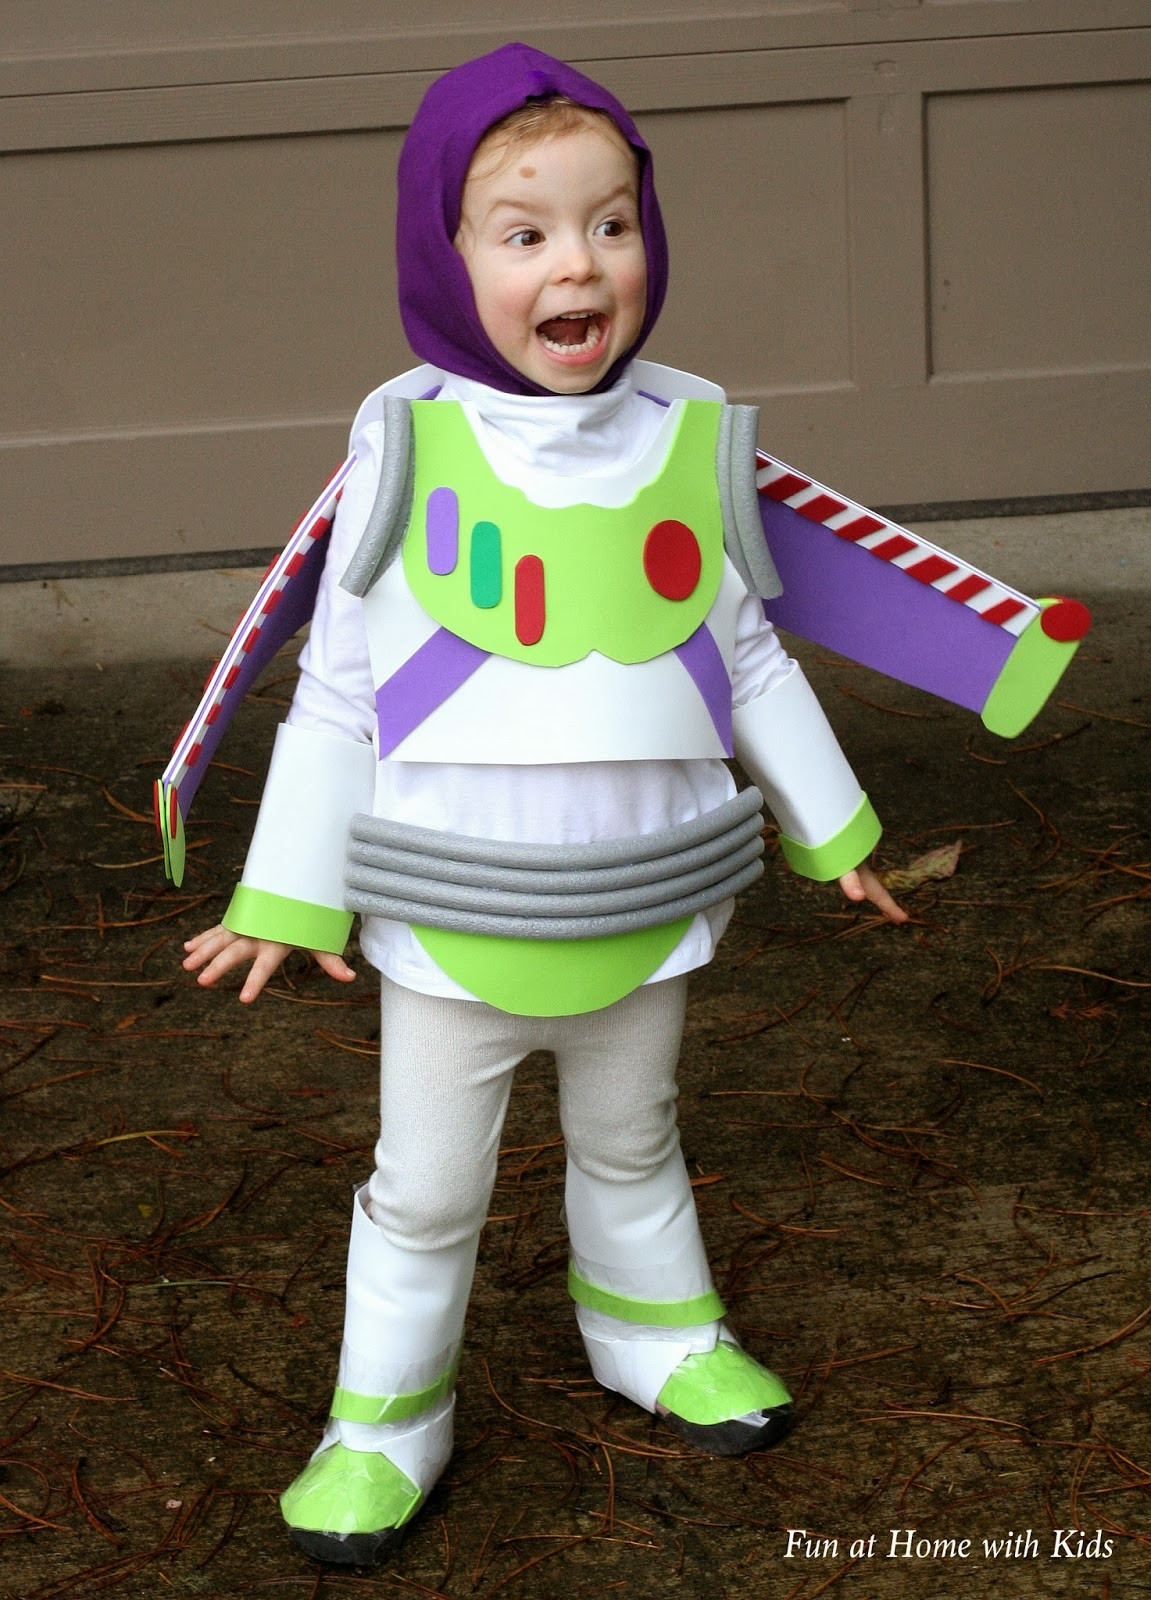 Best ideas about Kids Halloween Costumes DIY . Save or Pin DIY Kids Buzz Lightyear No Sew Halloween Costume Now.